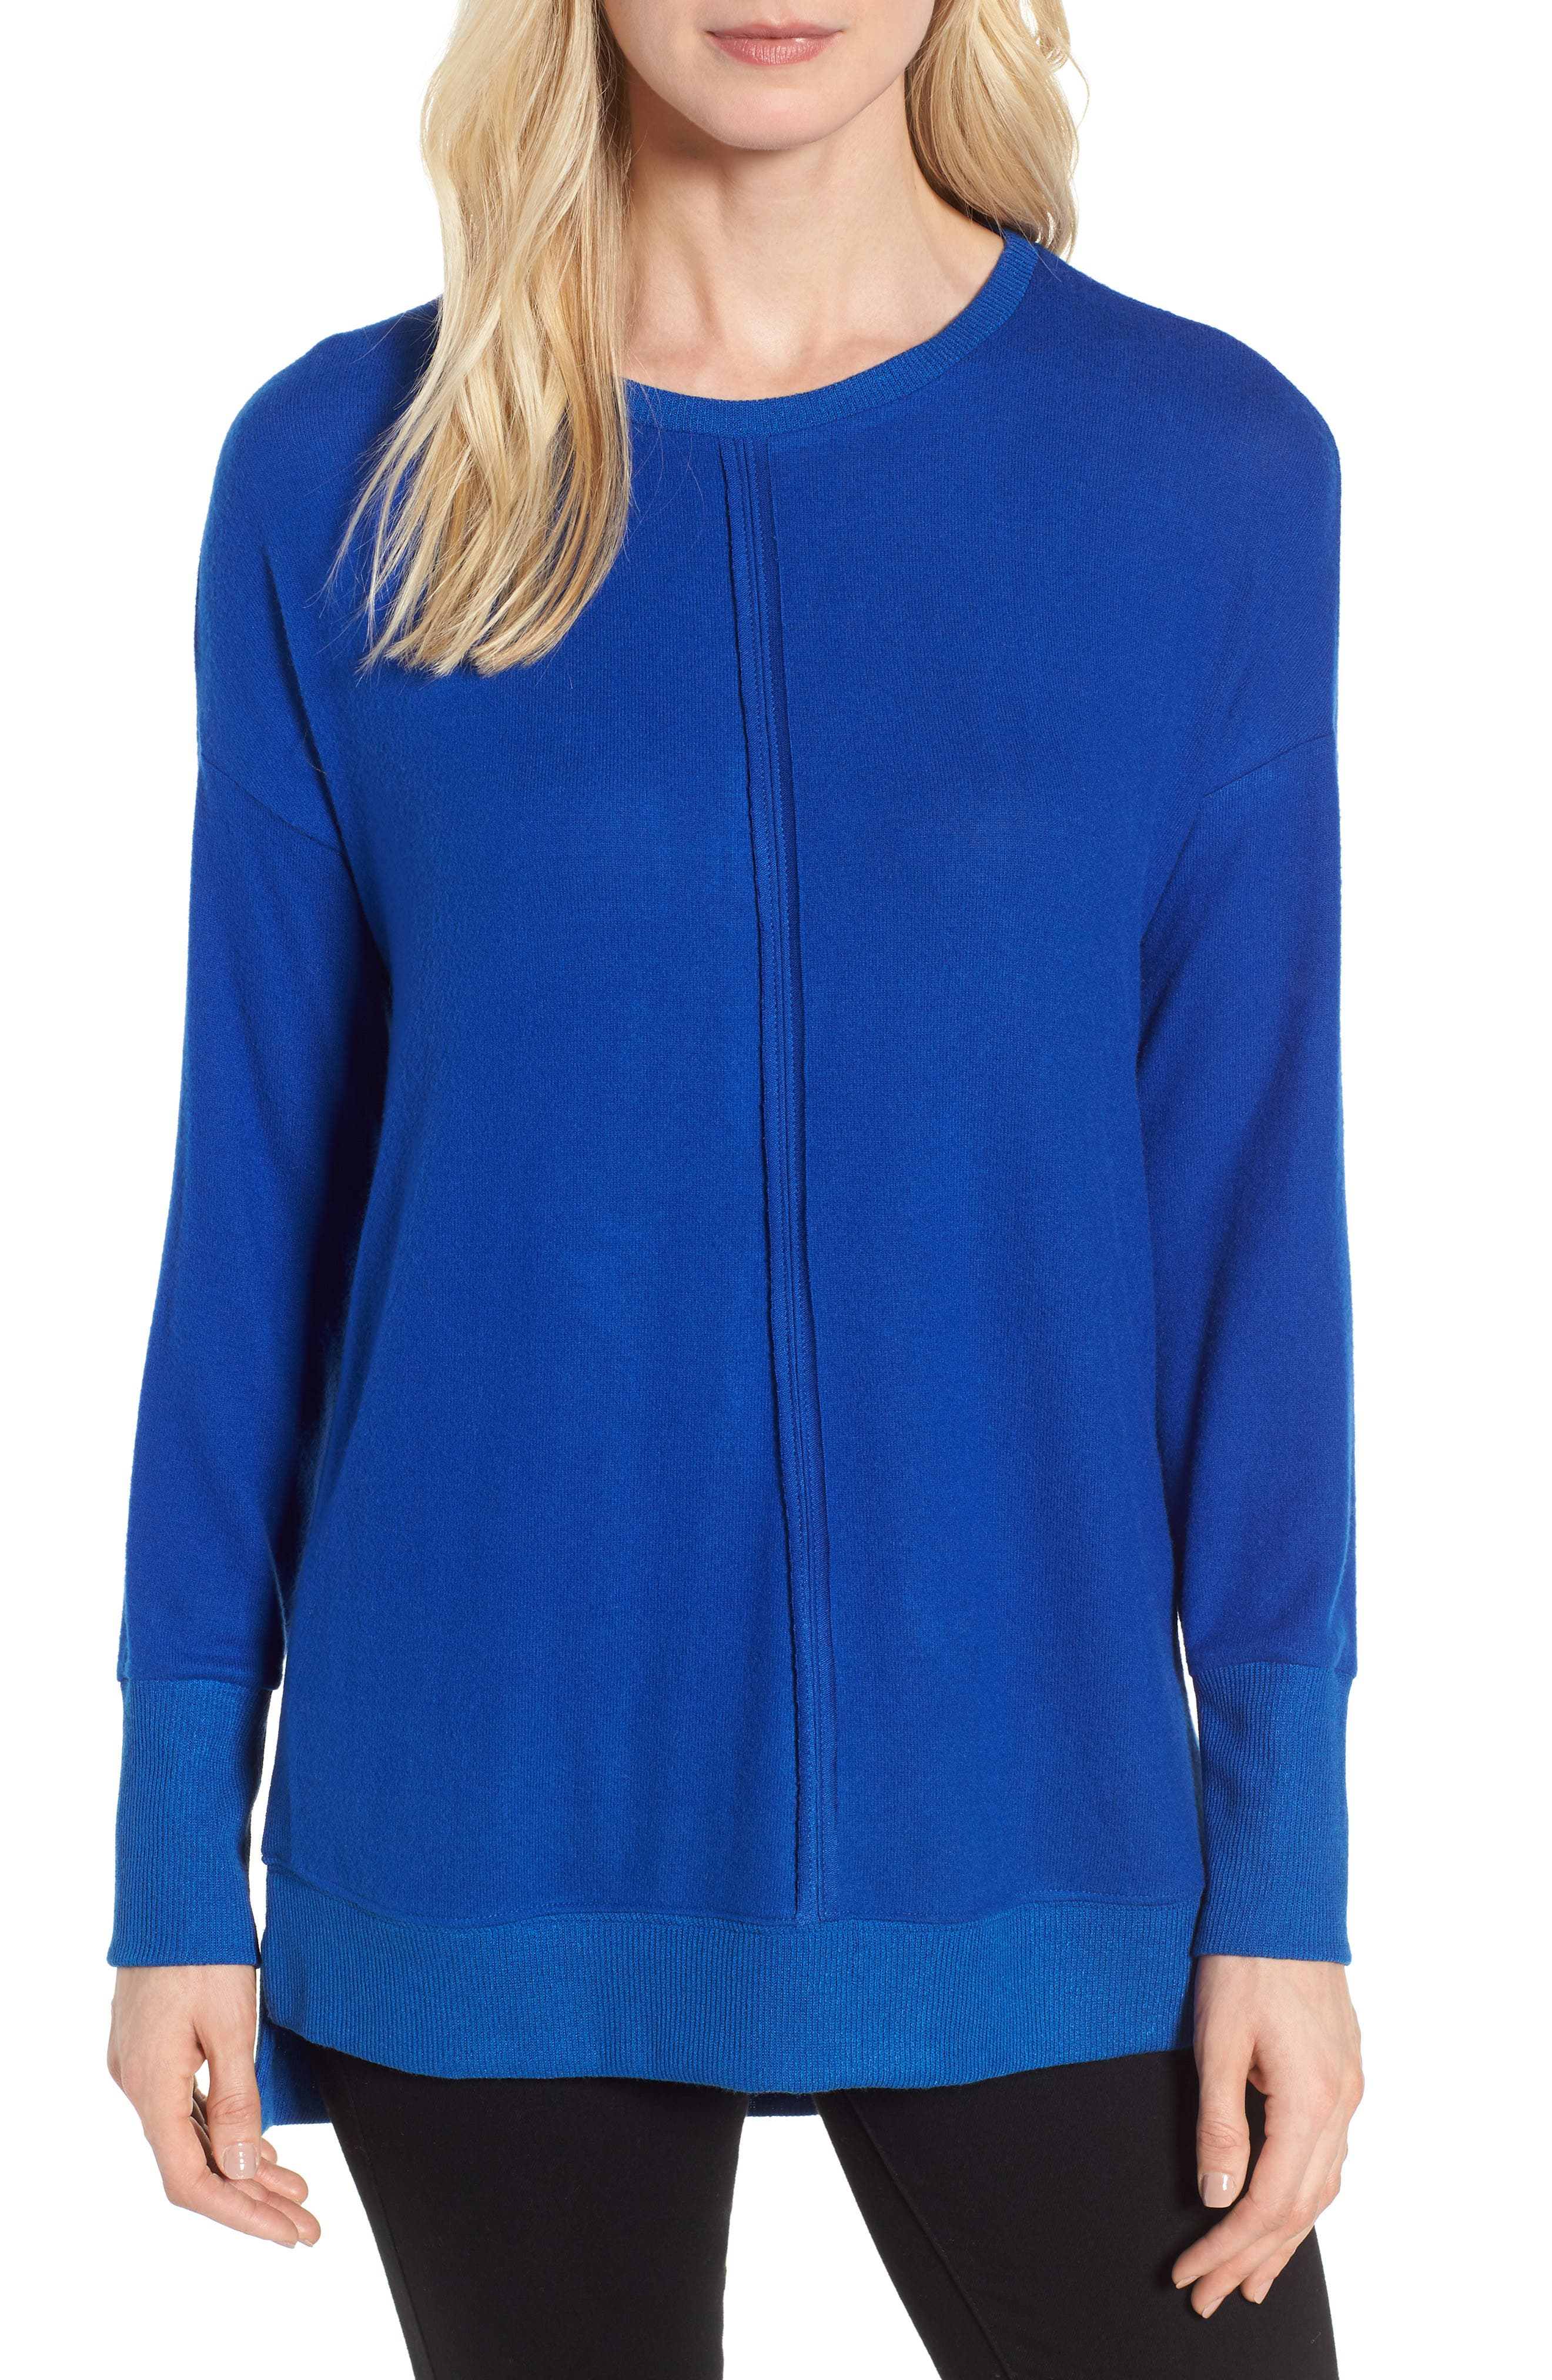 Cozy Fleece Tunic,                             Main thumbnail 1, color,                             Blue Surf